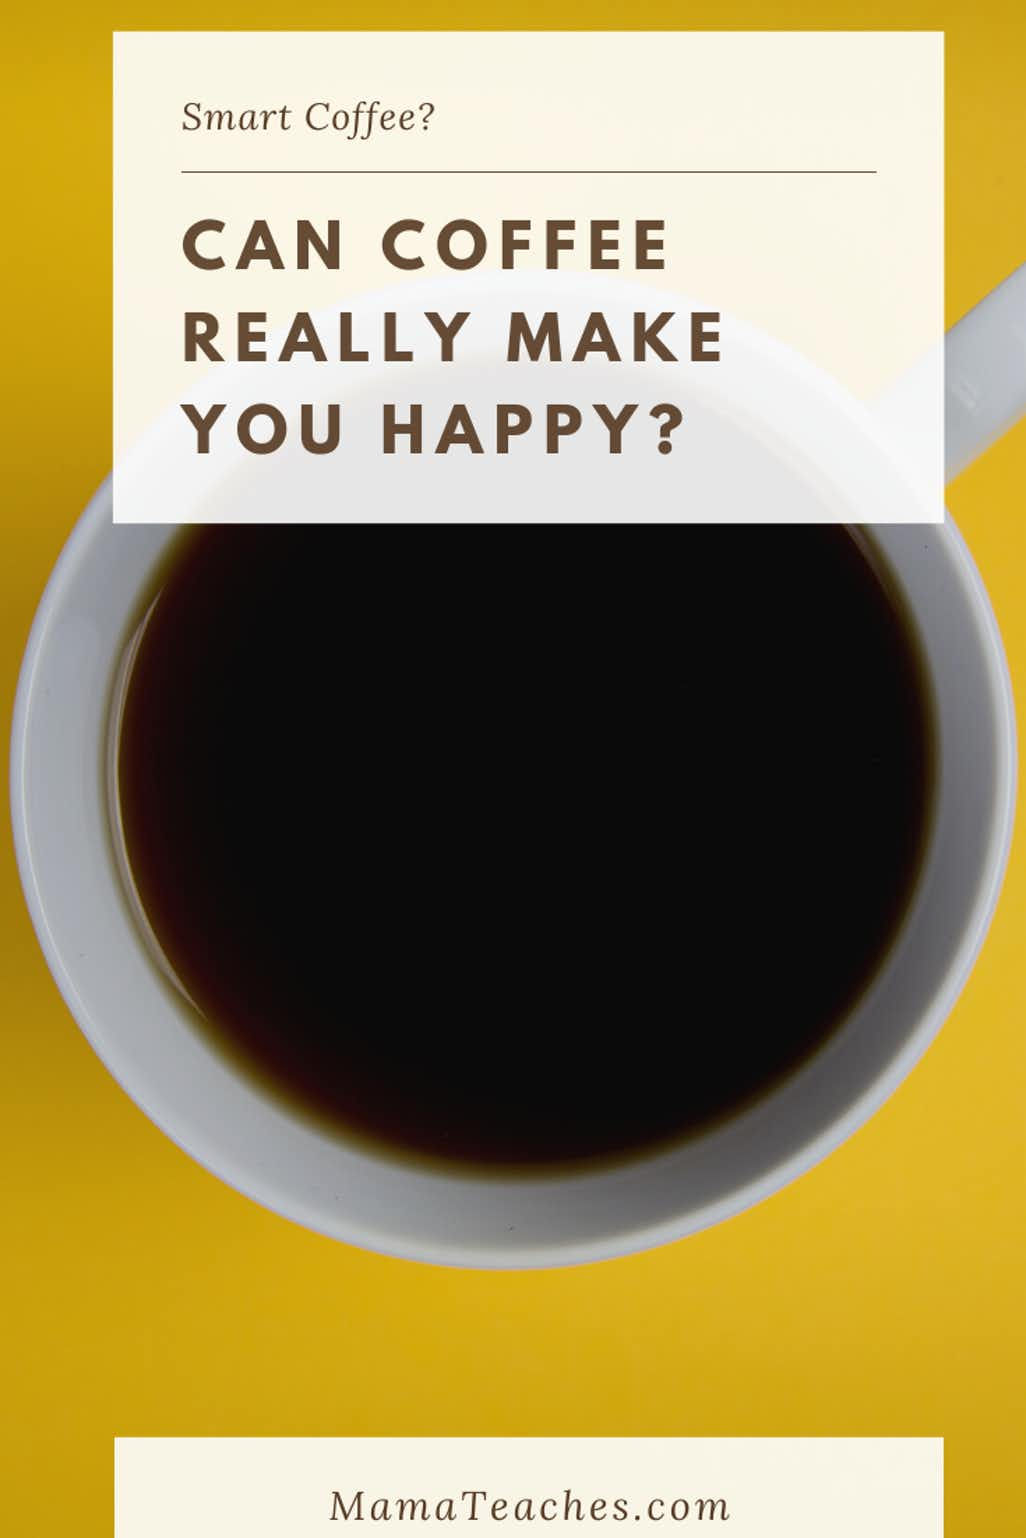 Can Coffee Really Make You Happy?